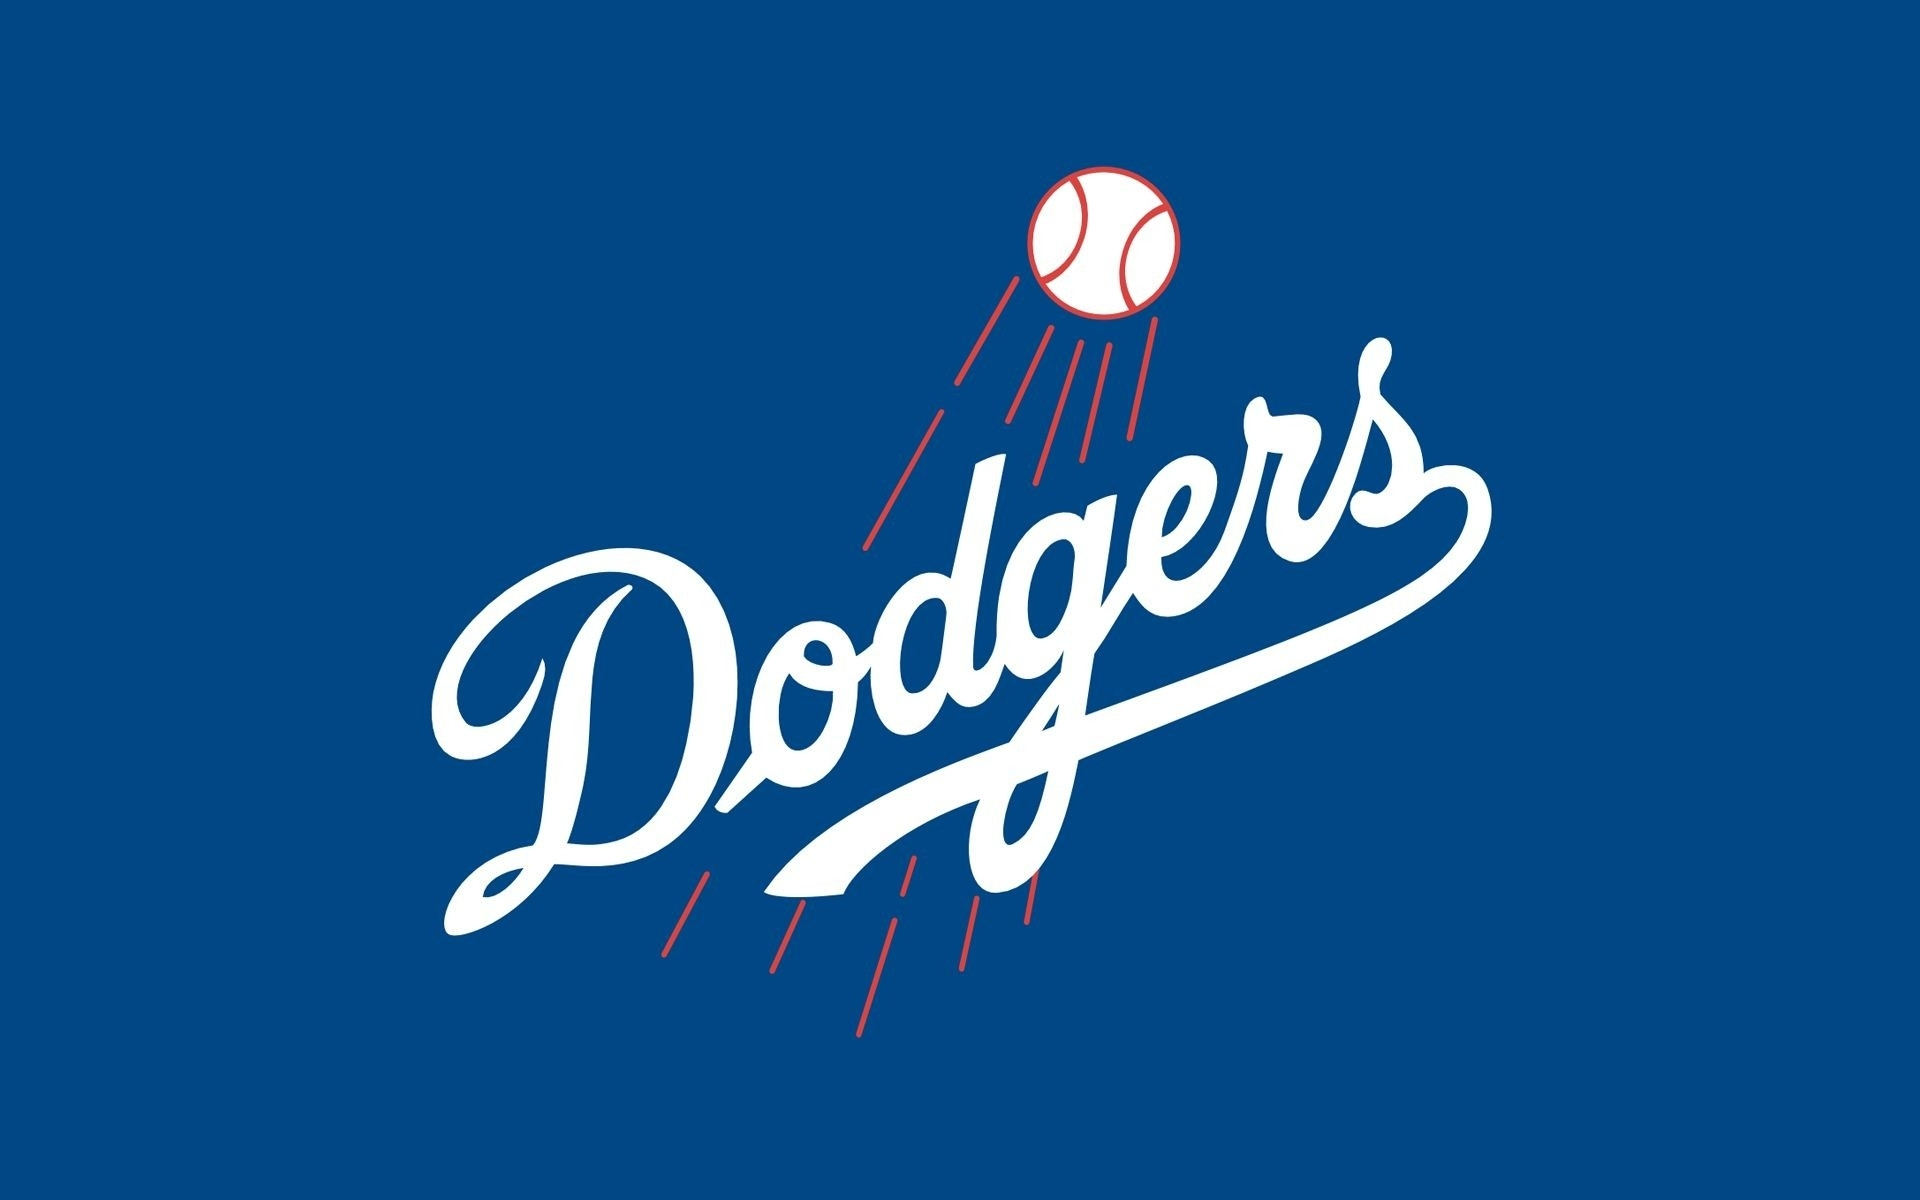 dodgers wallpaper ·① download free hd backgrounds for desktop and